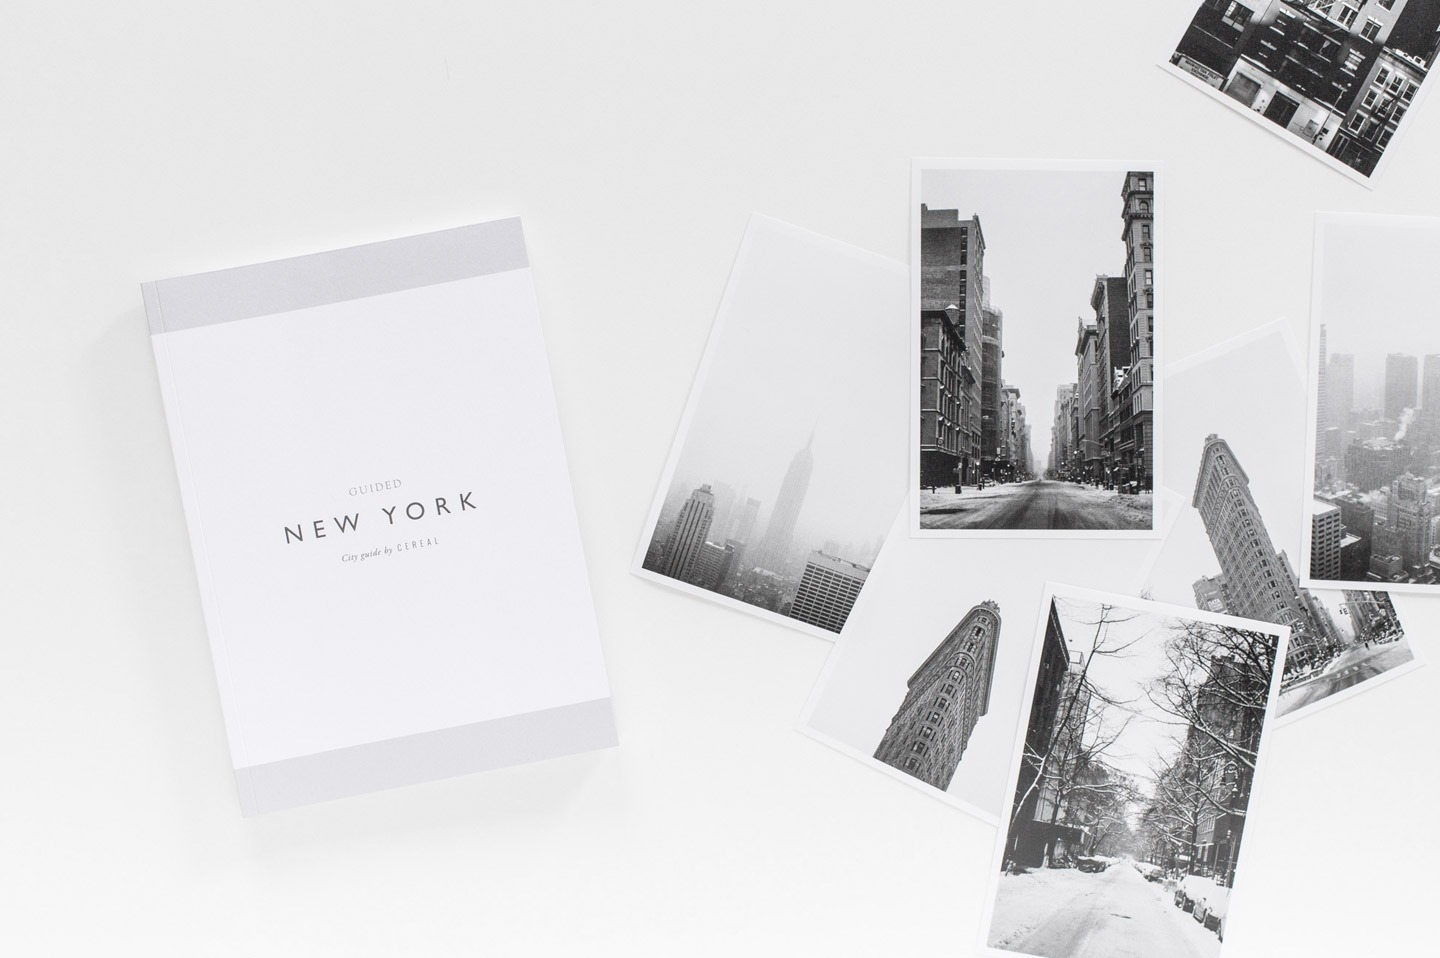 Guided: New York